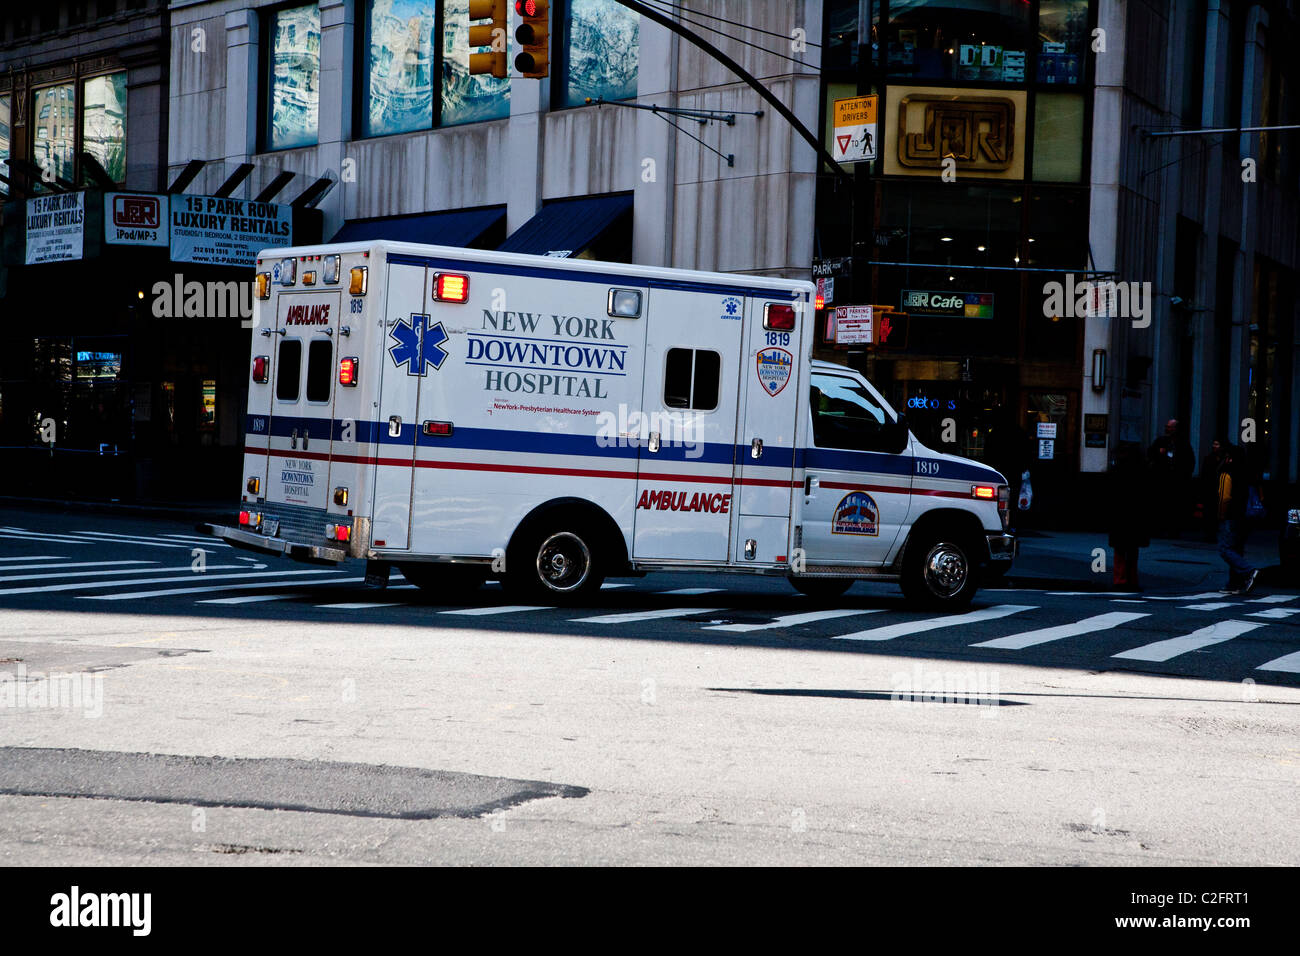 A Ambulance Returning To The New York Downtown Hospital Stock Photo